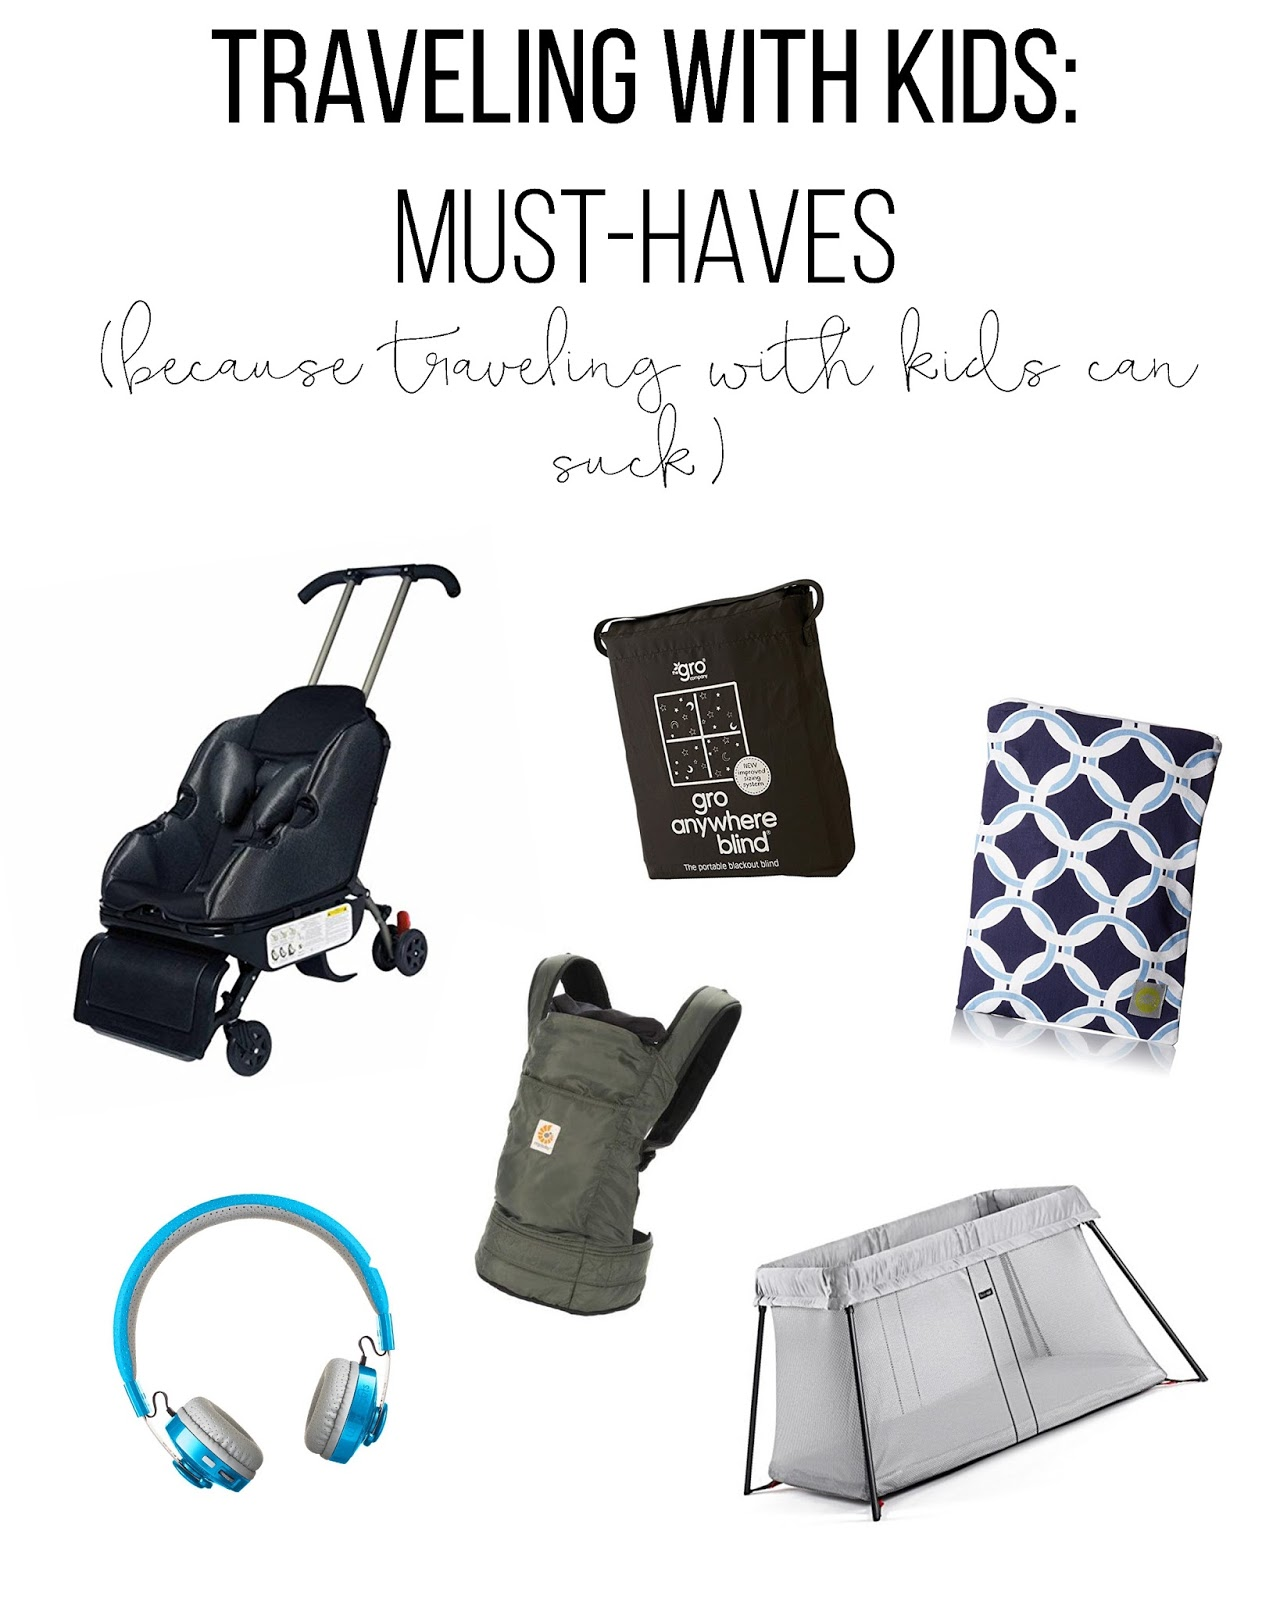 97e9b3d3006 traveling with kids  must-haves